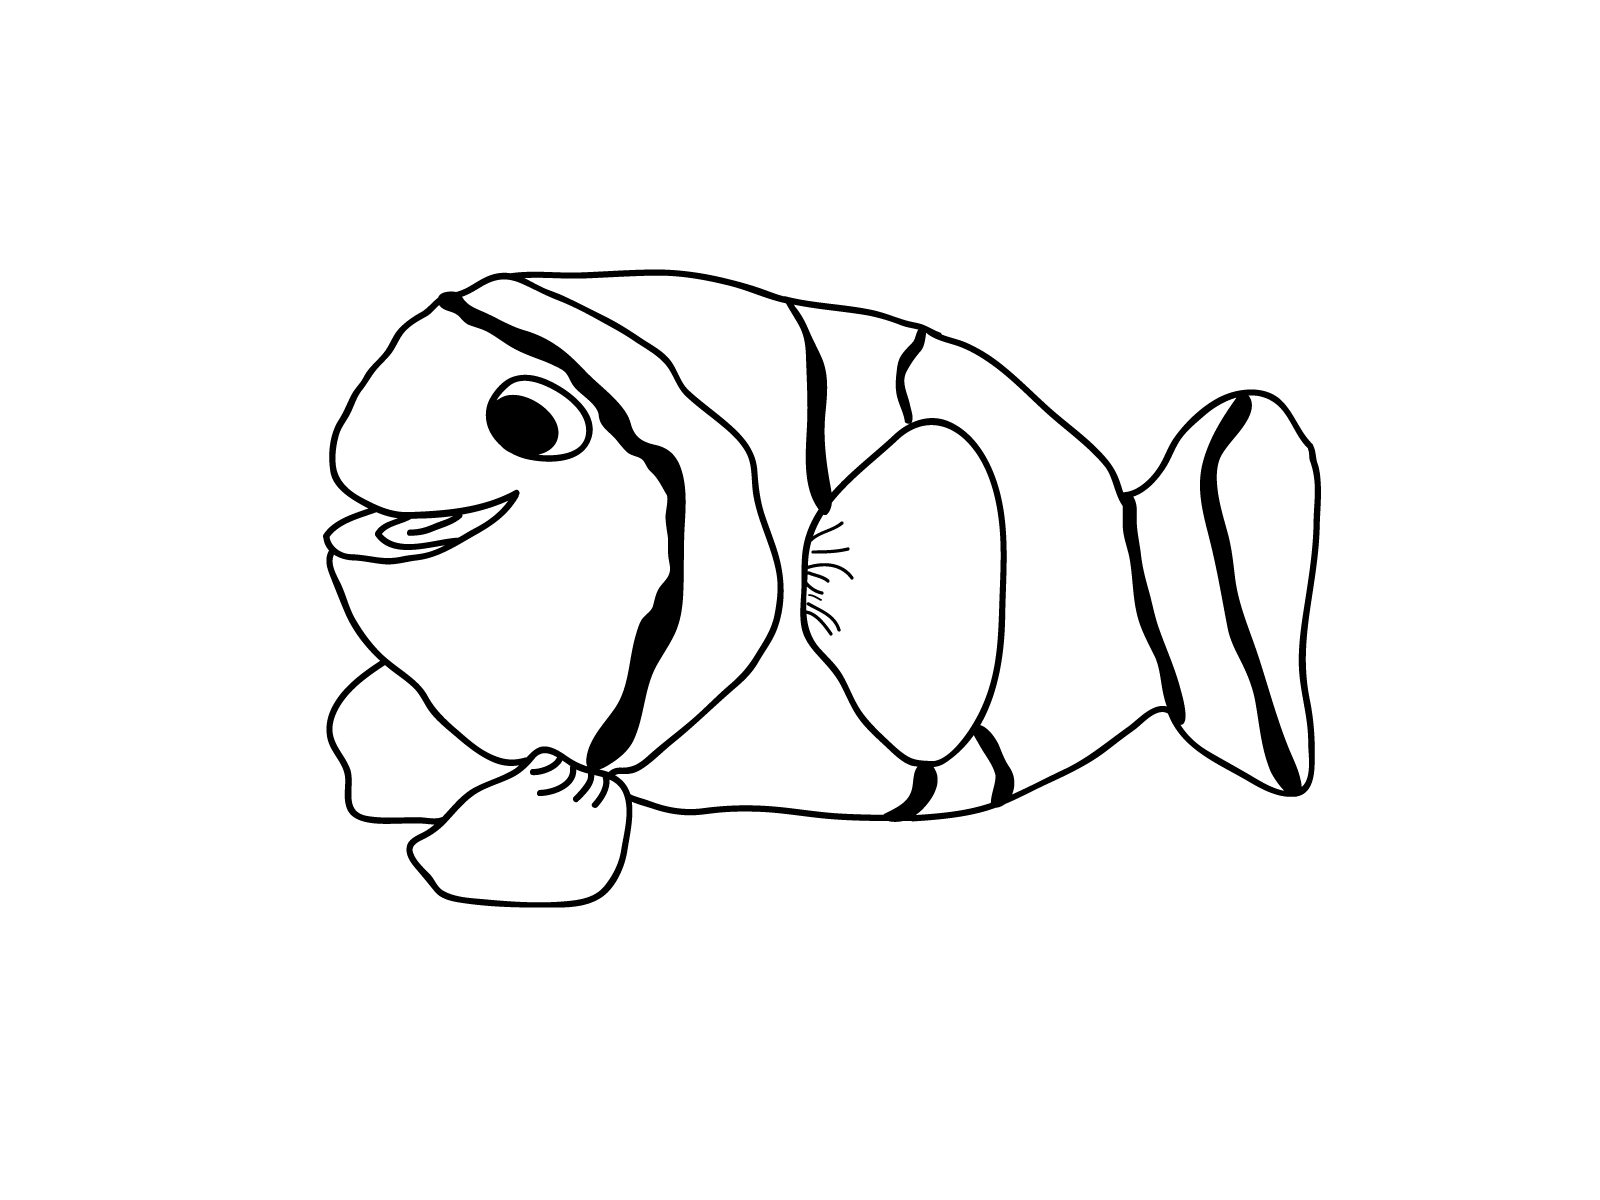 Fish Coloring Page 2020 Printable | Activity Shelter